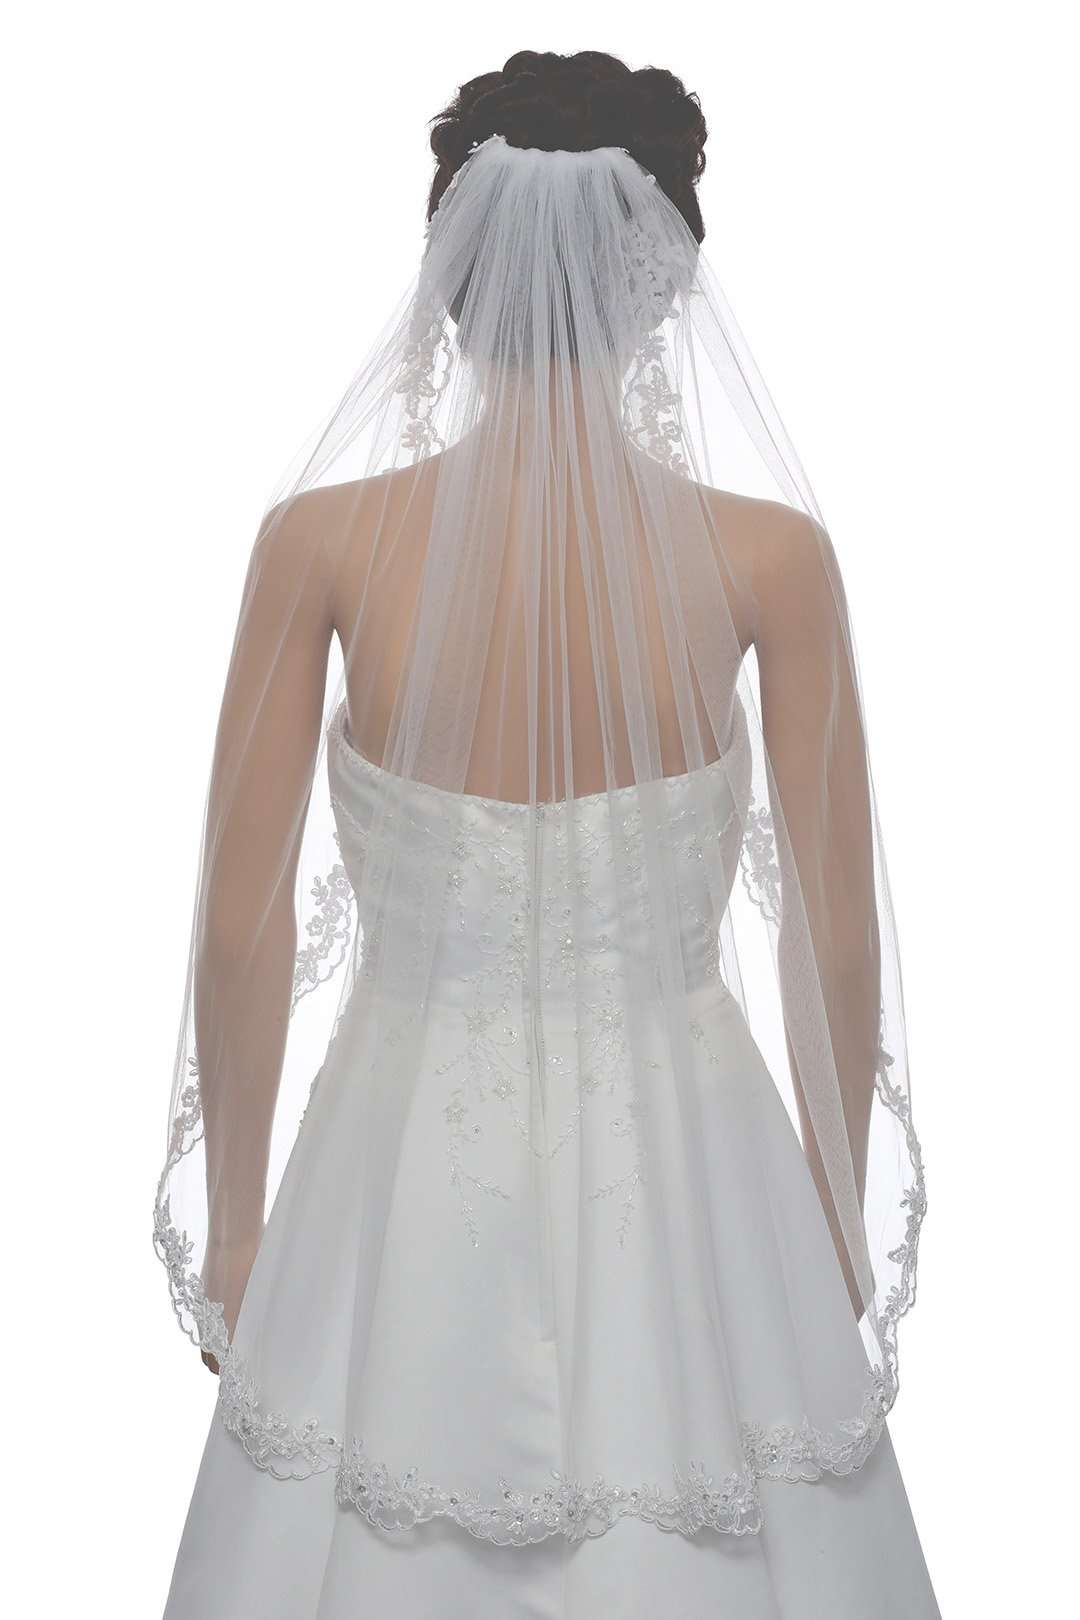 1T 1 Tier Flower Scallop Embroided Lace Pearl Veil - White Fingertip Length 36'' V466